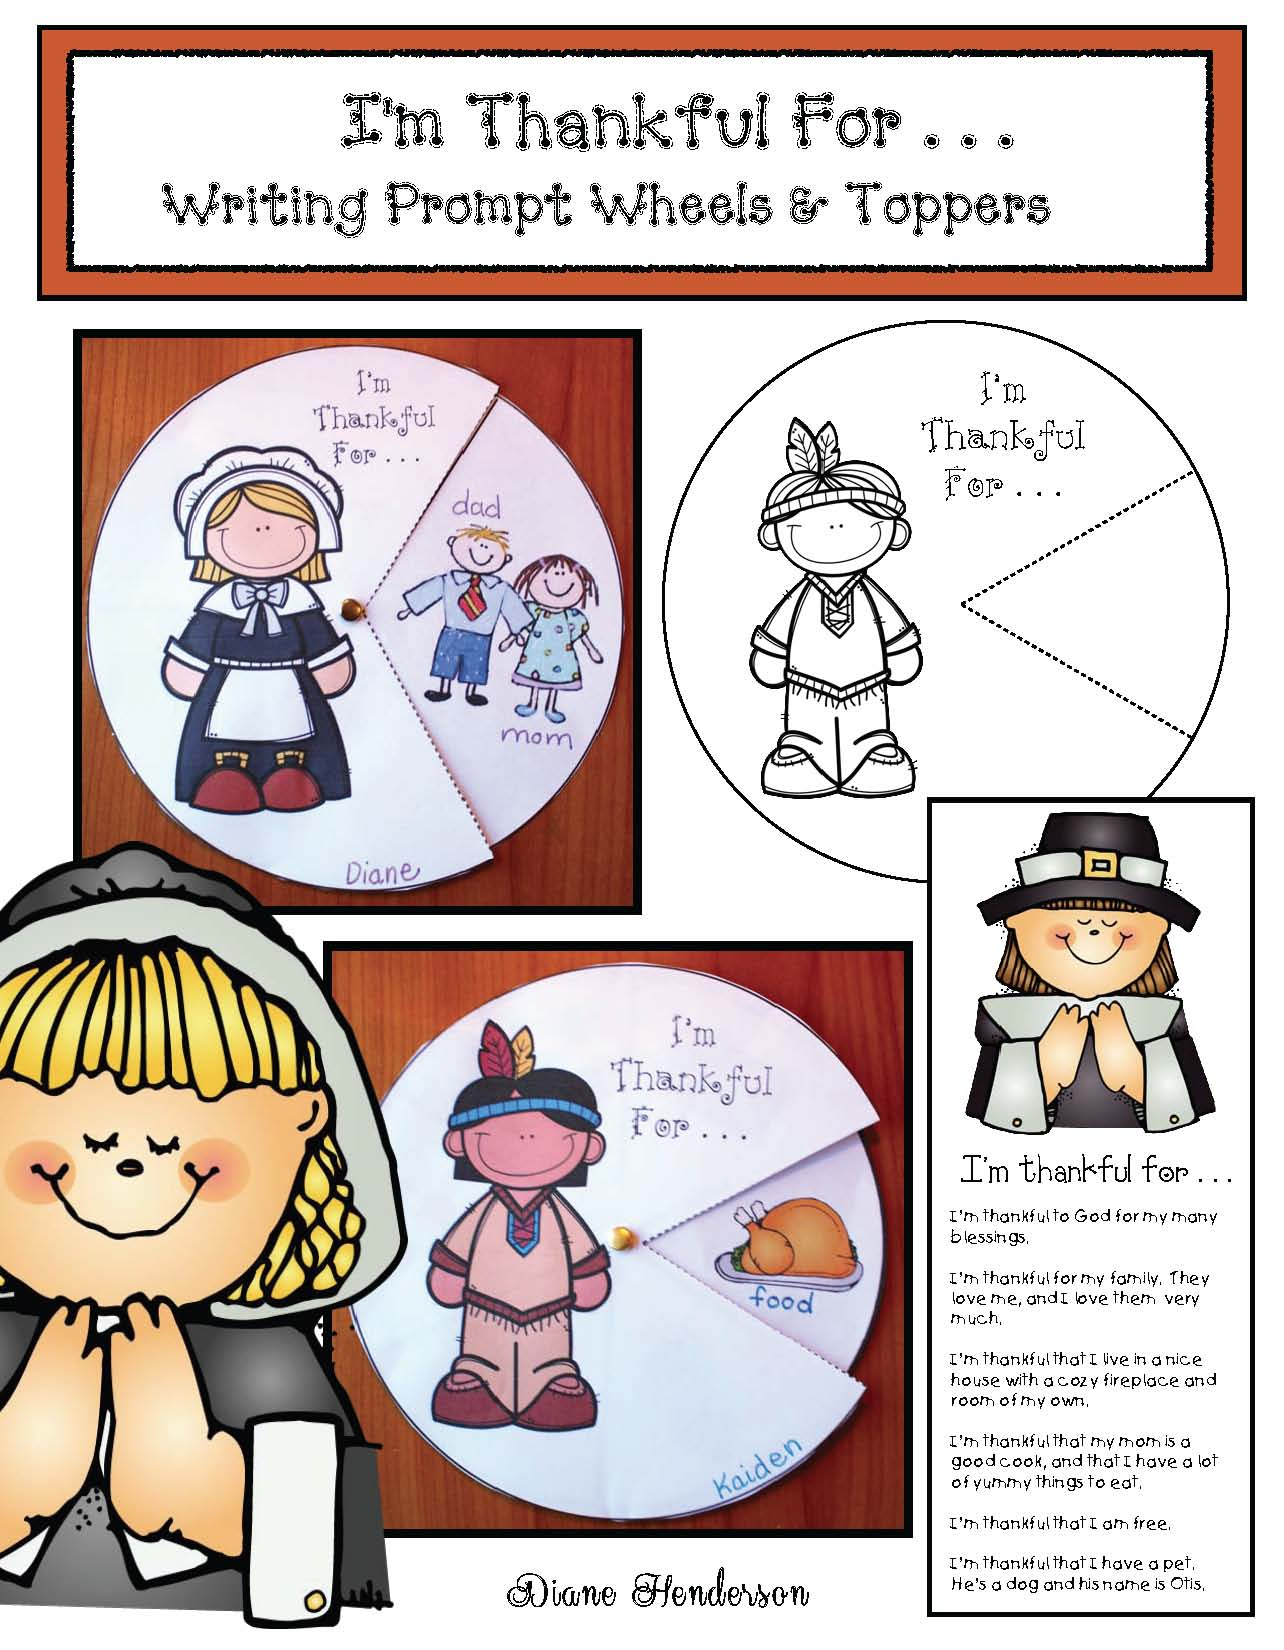 november writing prompts, thanksgiving writing prompts, i'm thankful activities, thanksgiving crafts, thanksgiving activities,